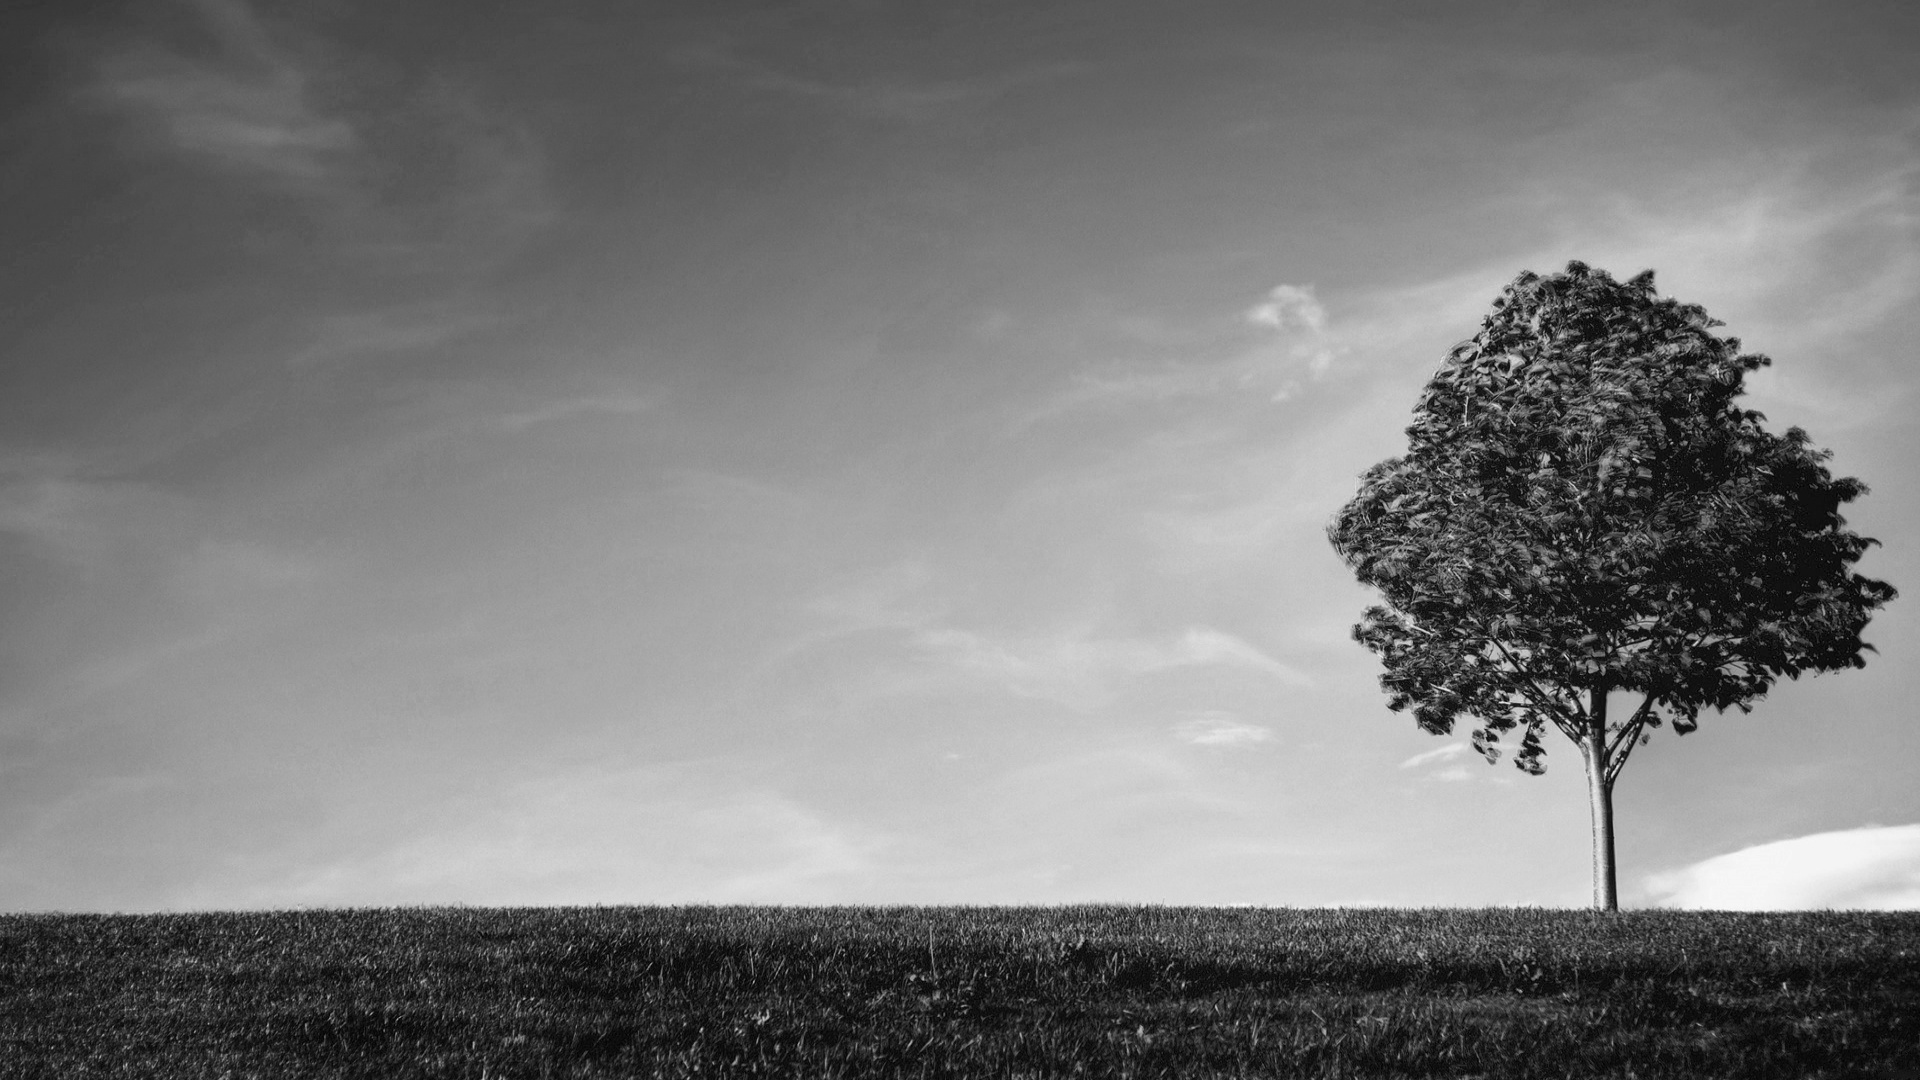 Tree Wallpaper Black And White 1920x1080